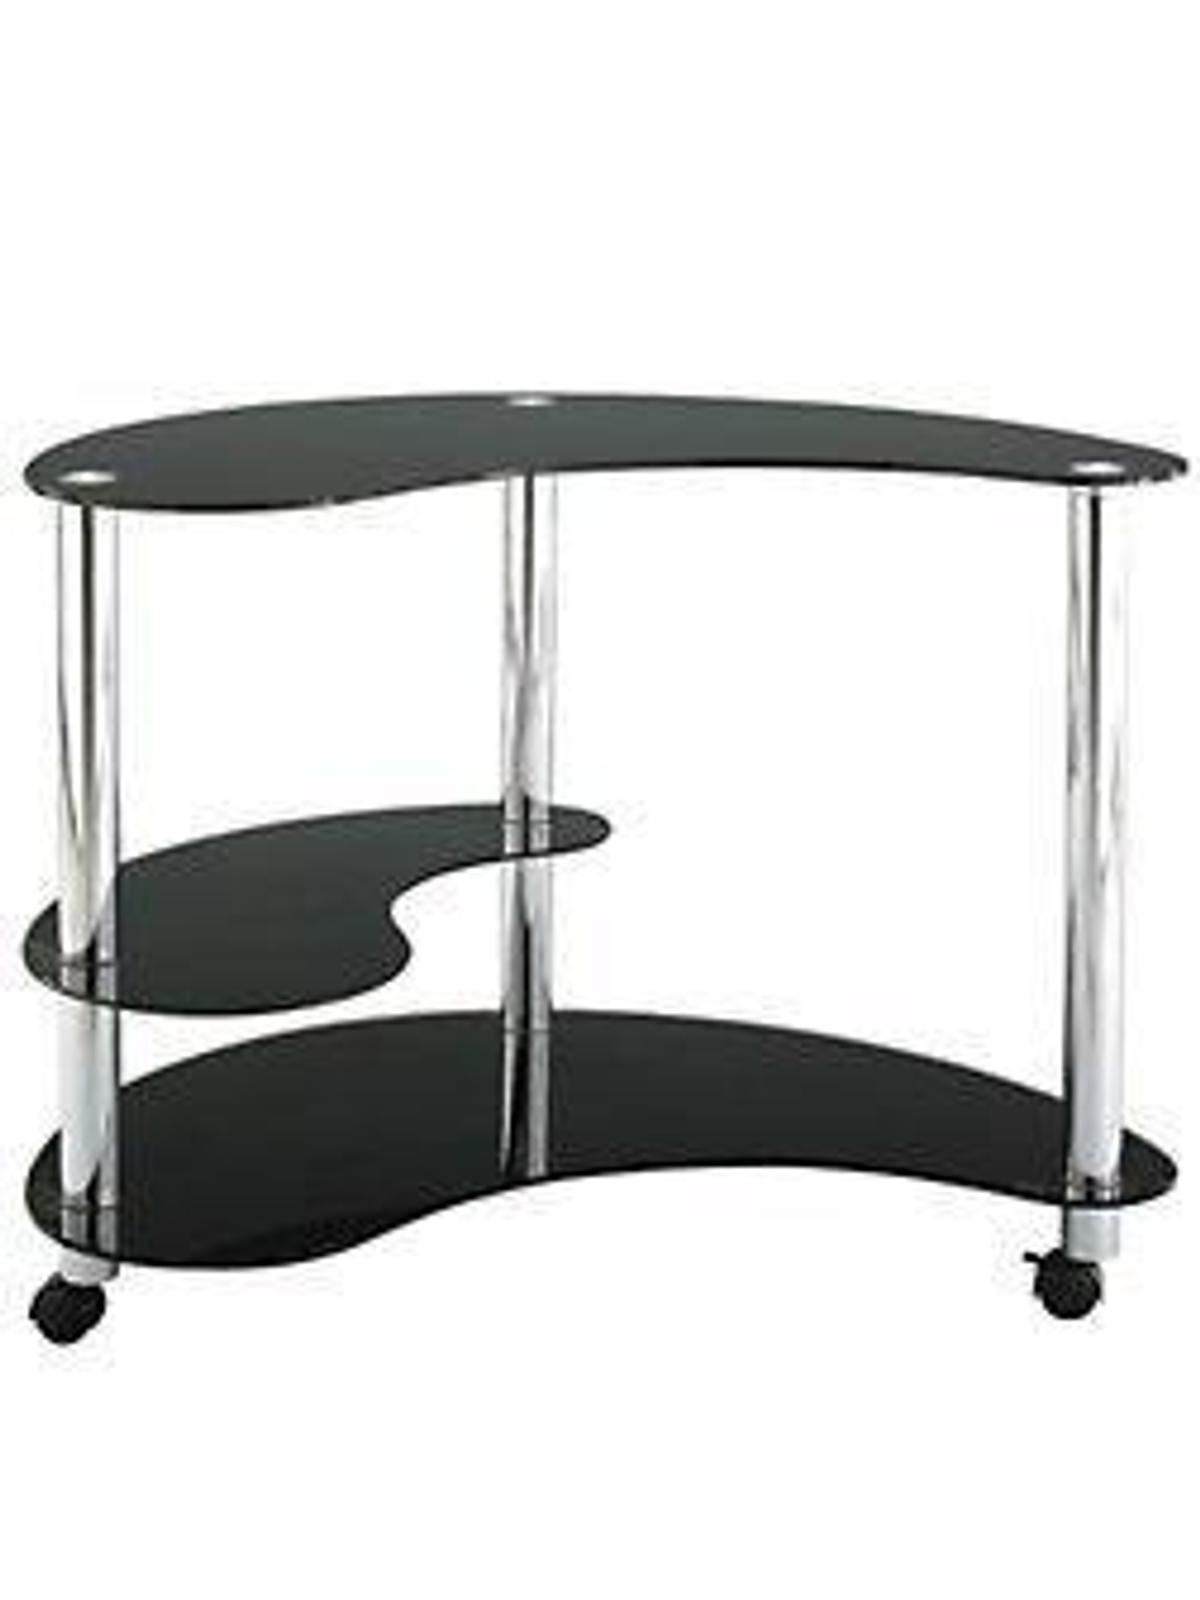 Kidney Shaped Glass Computer Desk In M18 Manchester For 40 00 For Sale Shpock